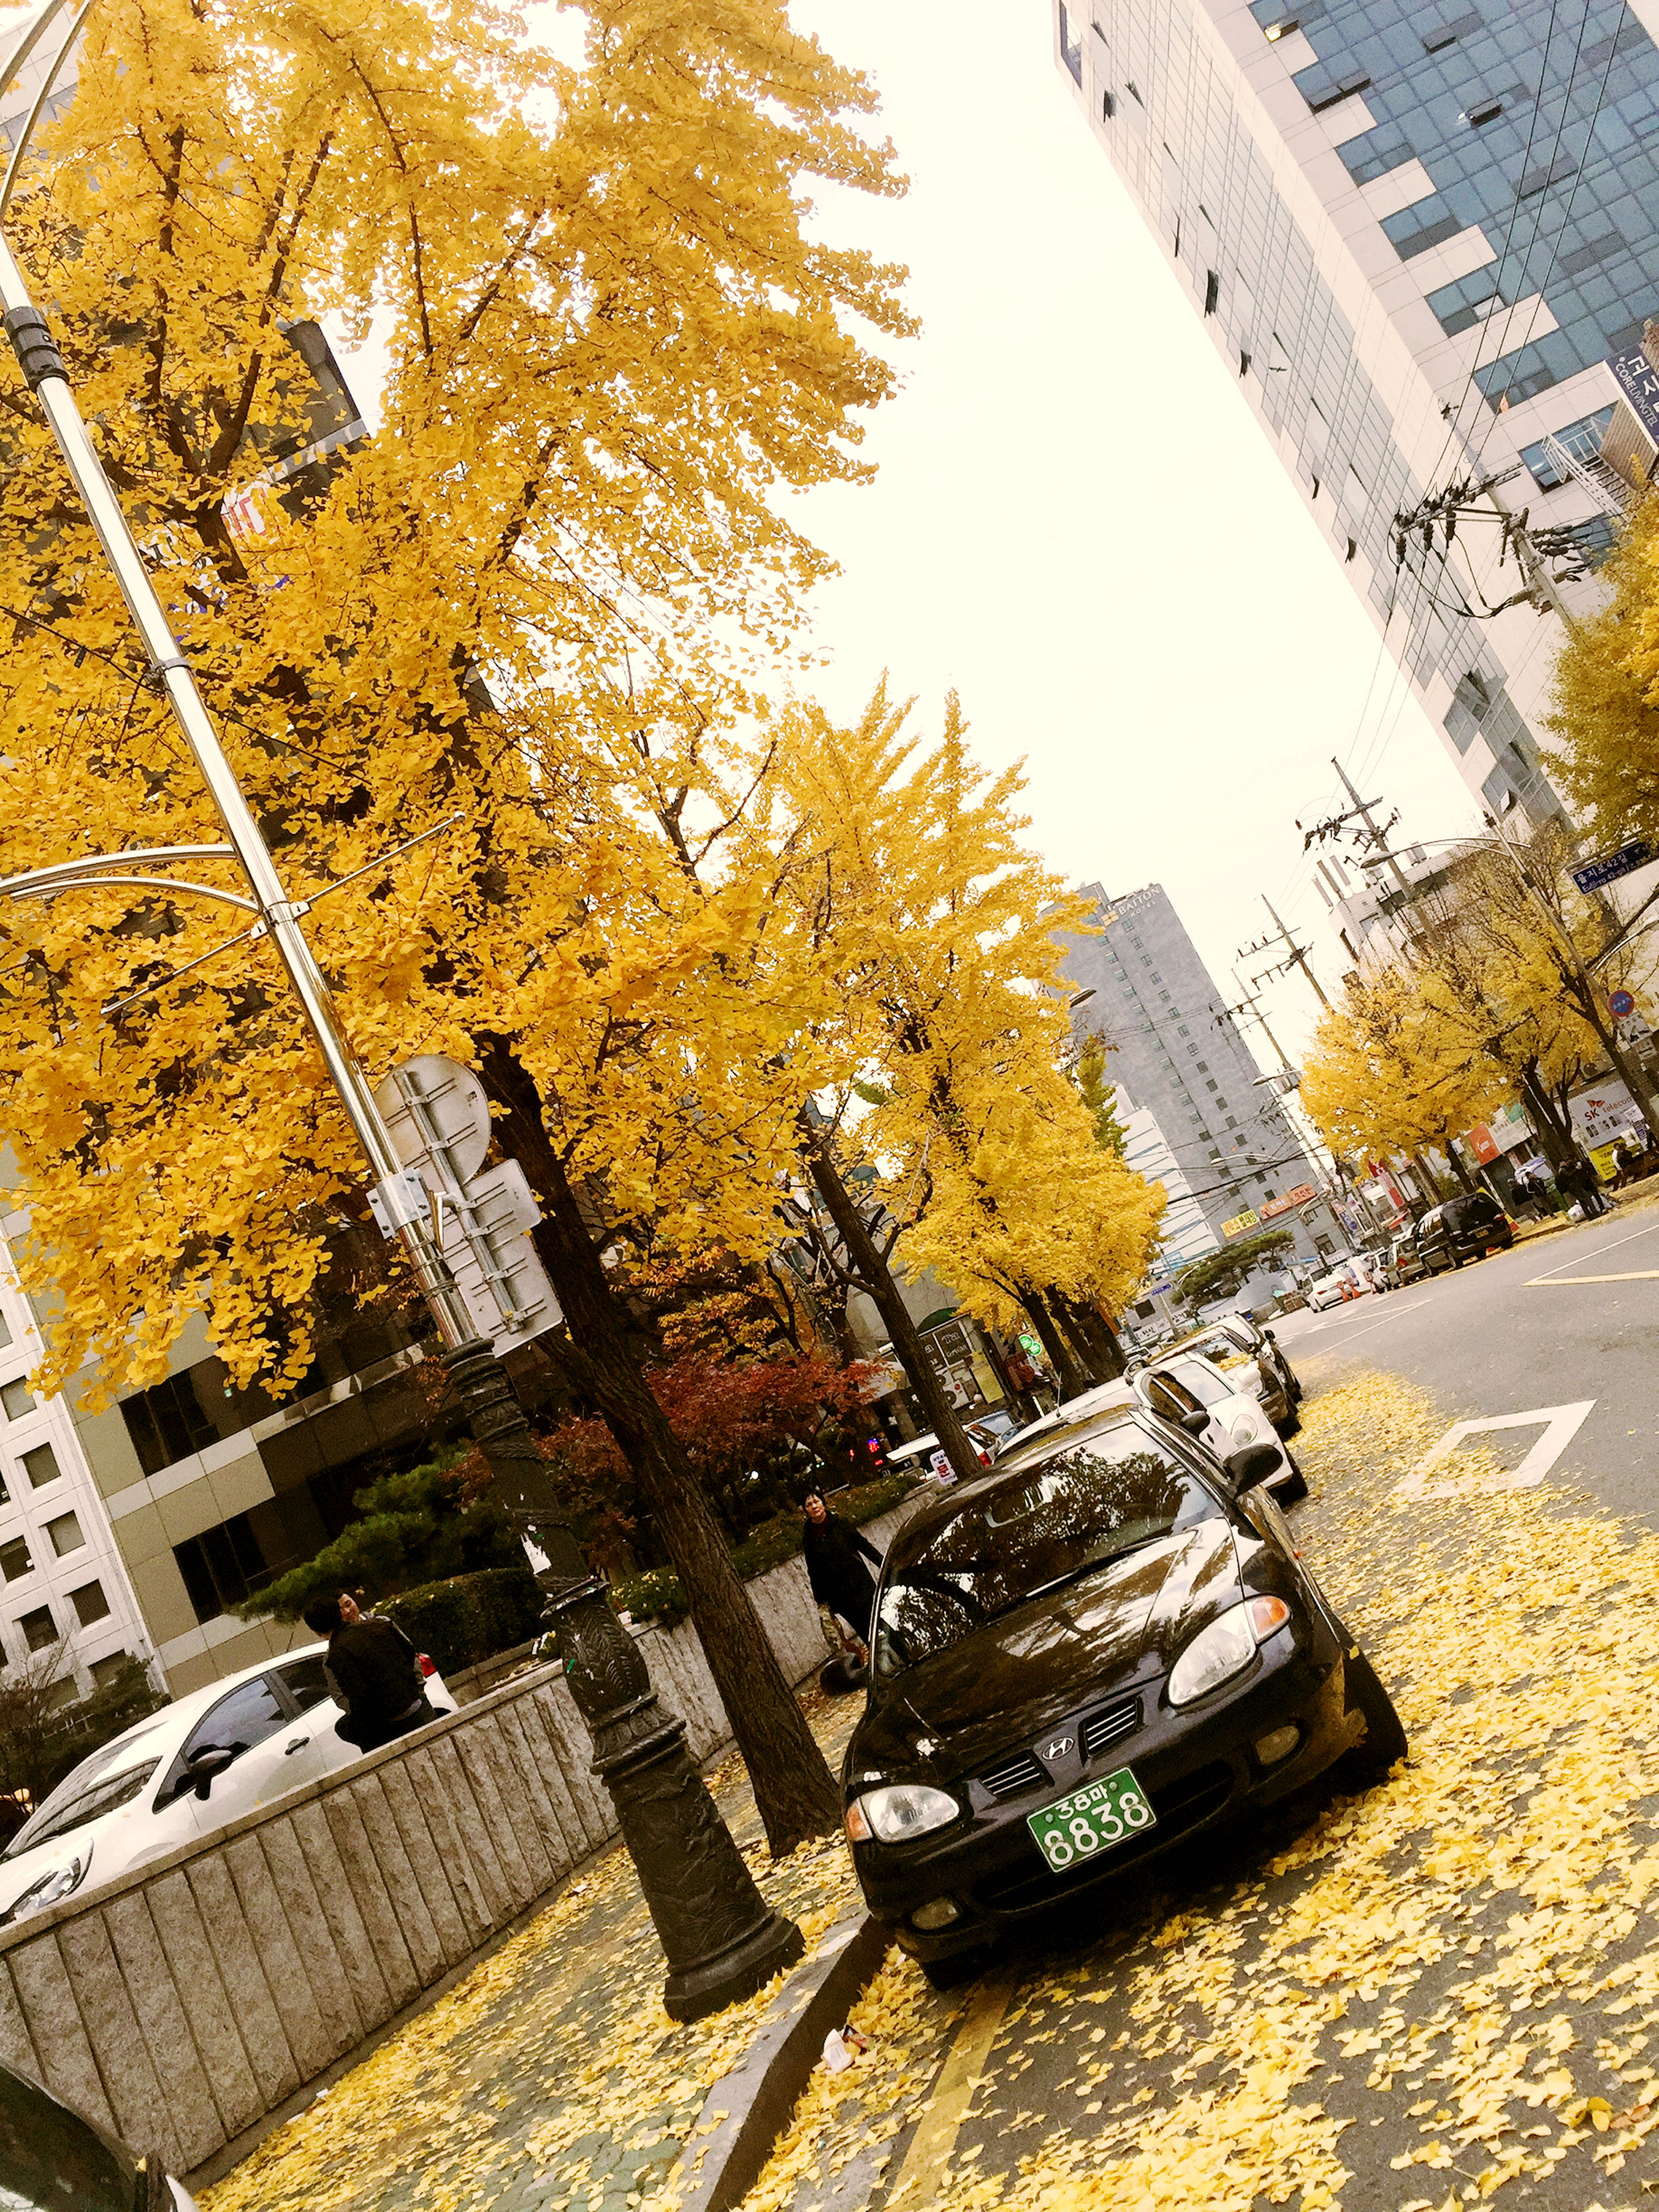 building exterior, architecture, built structure, city, tree, street, high angle view, autumn, building, day, season, car, residential building, outdoors, road, yellow, land vehicle, sunlight, no people, residential structure